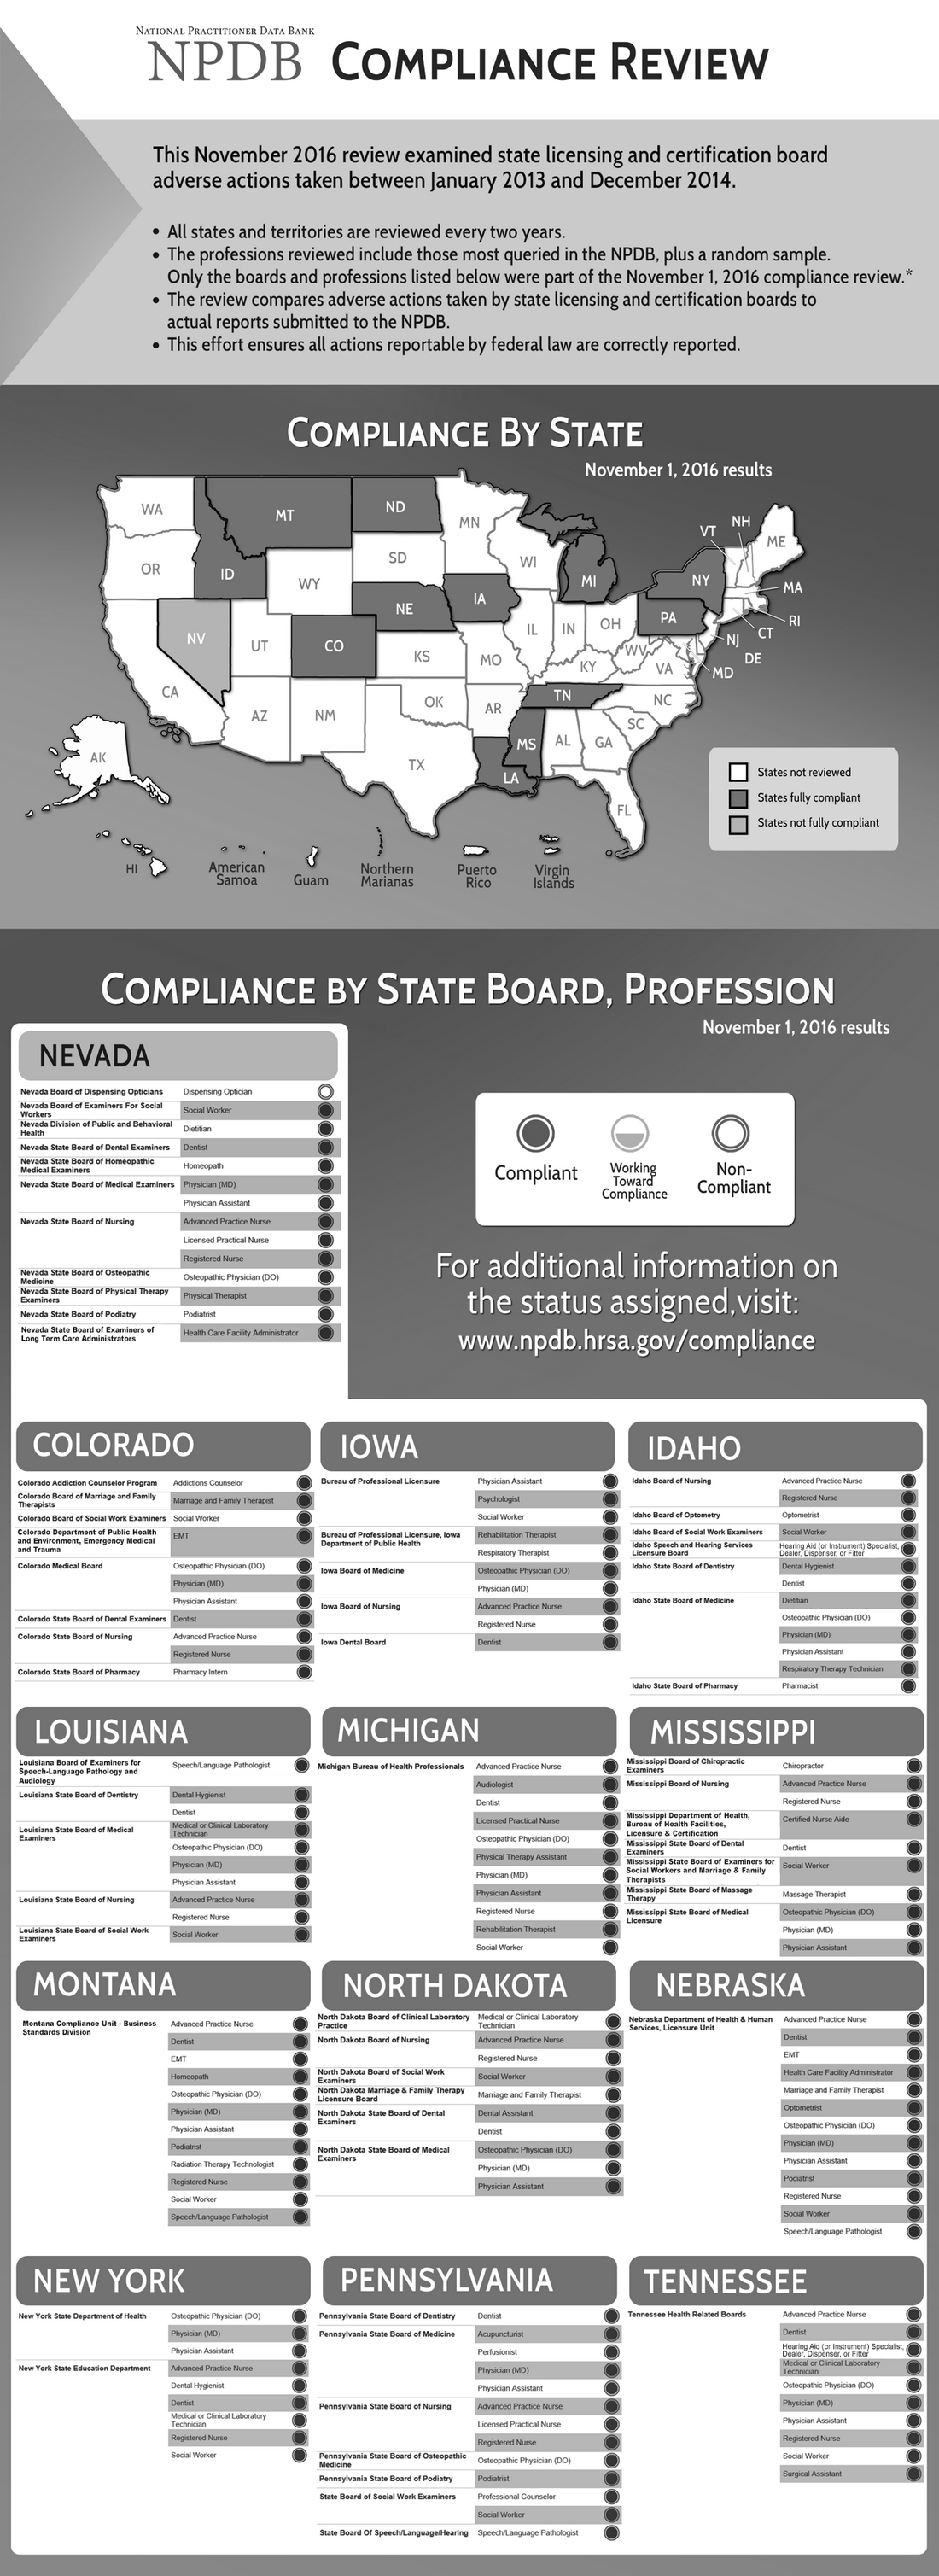 This image is a greyscale version of the Compliance Review November 2016 infographic.